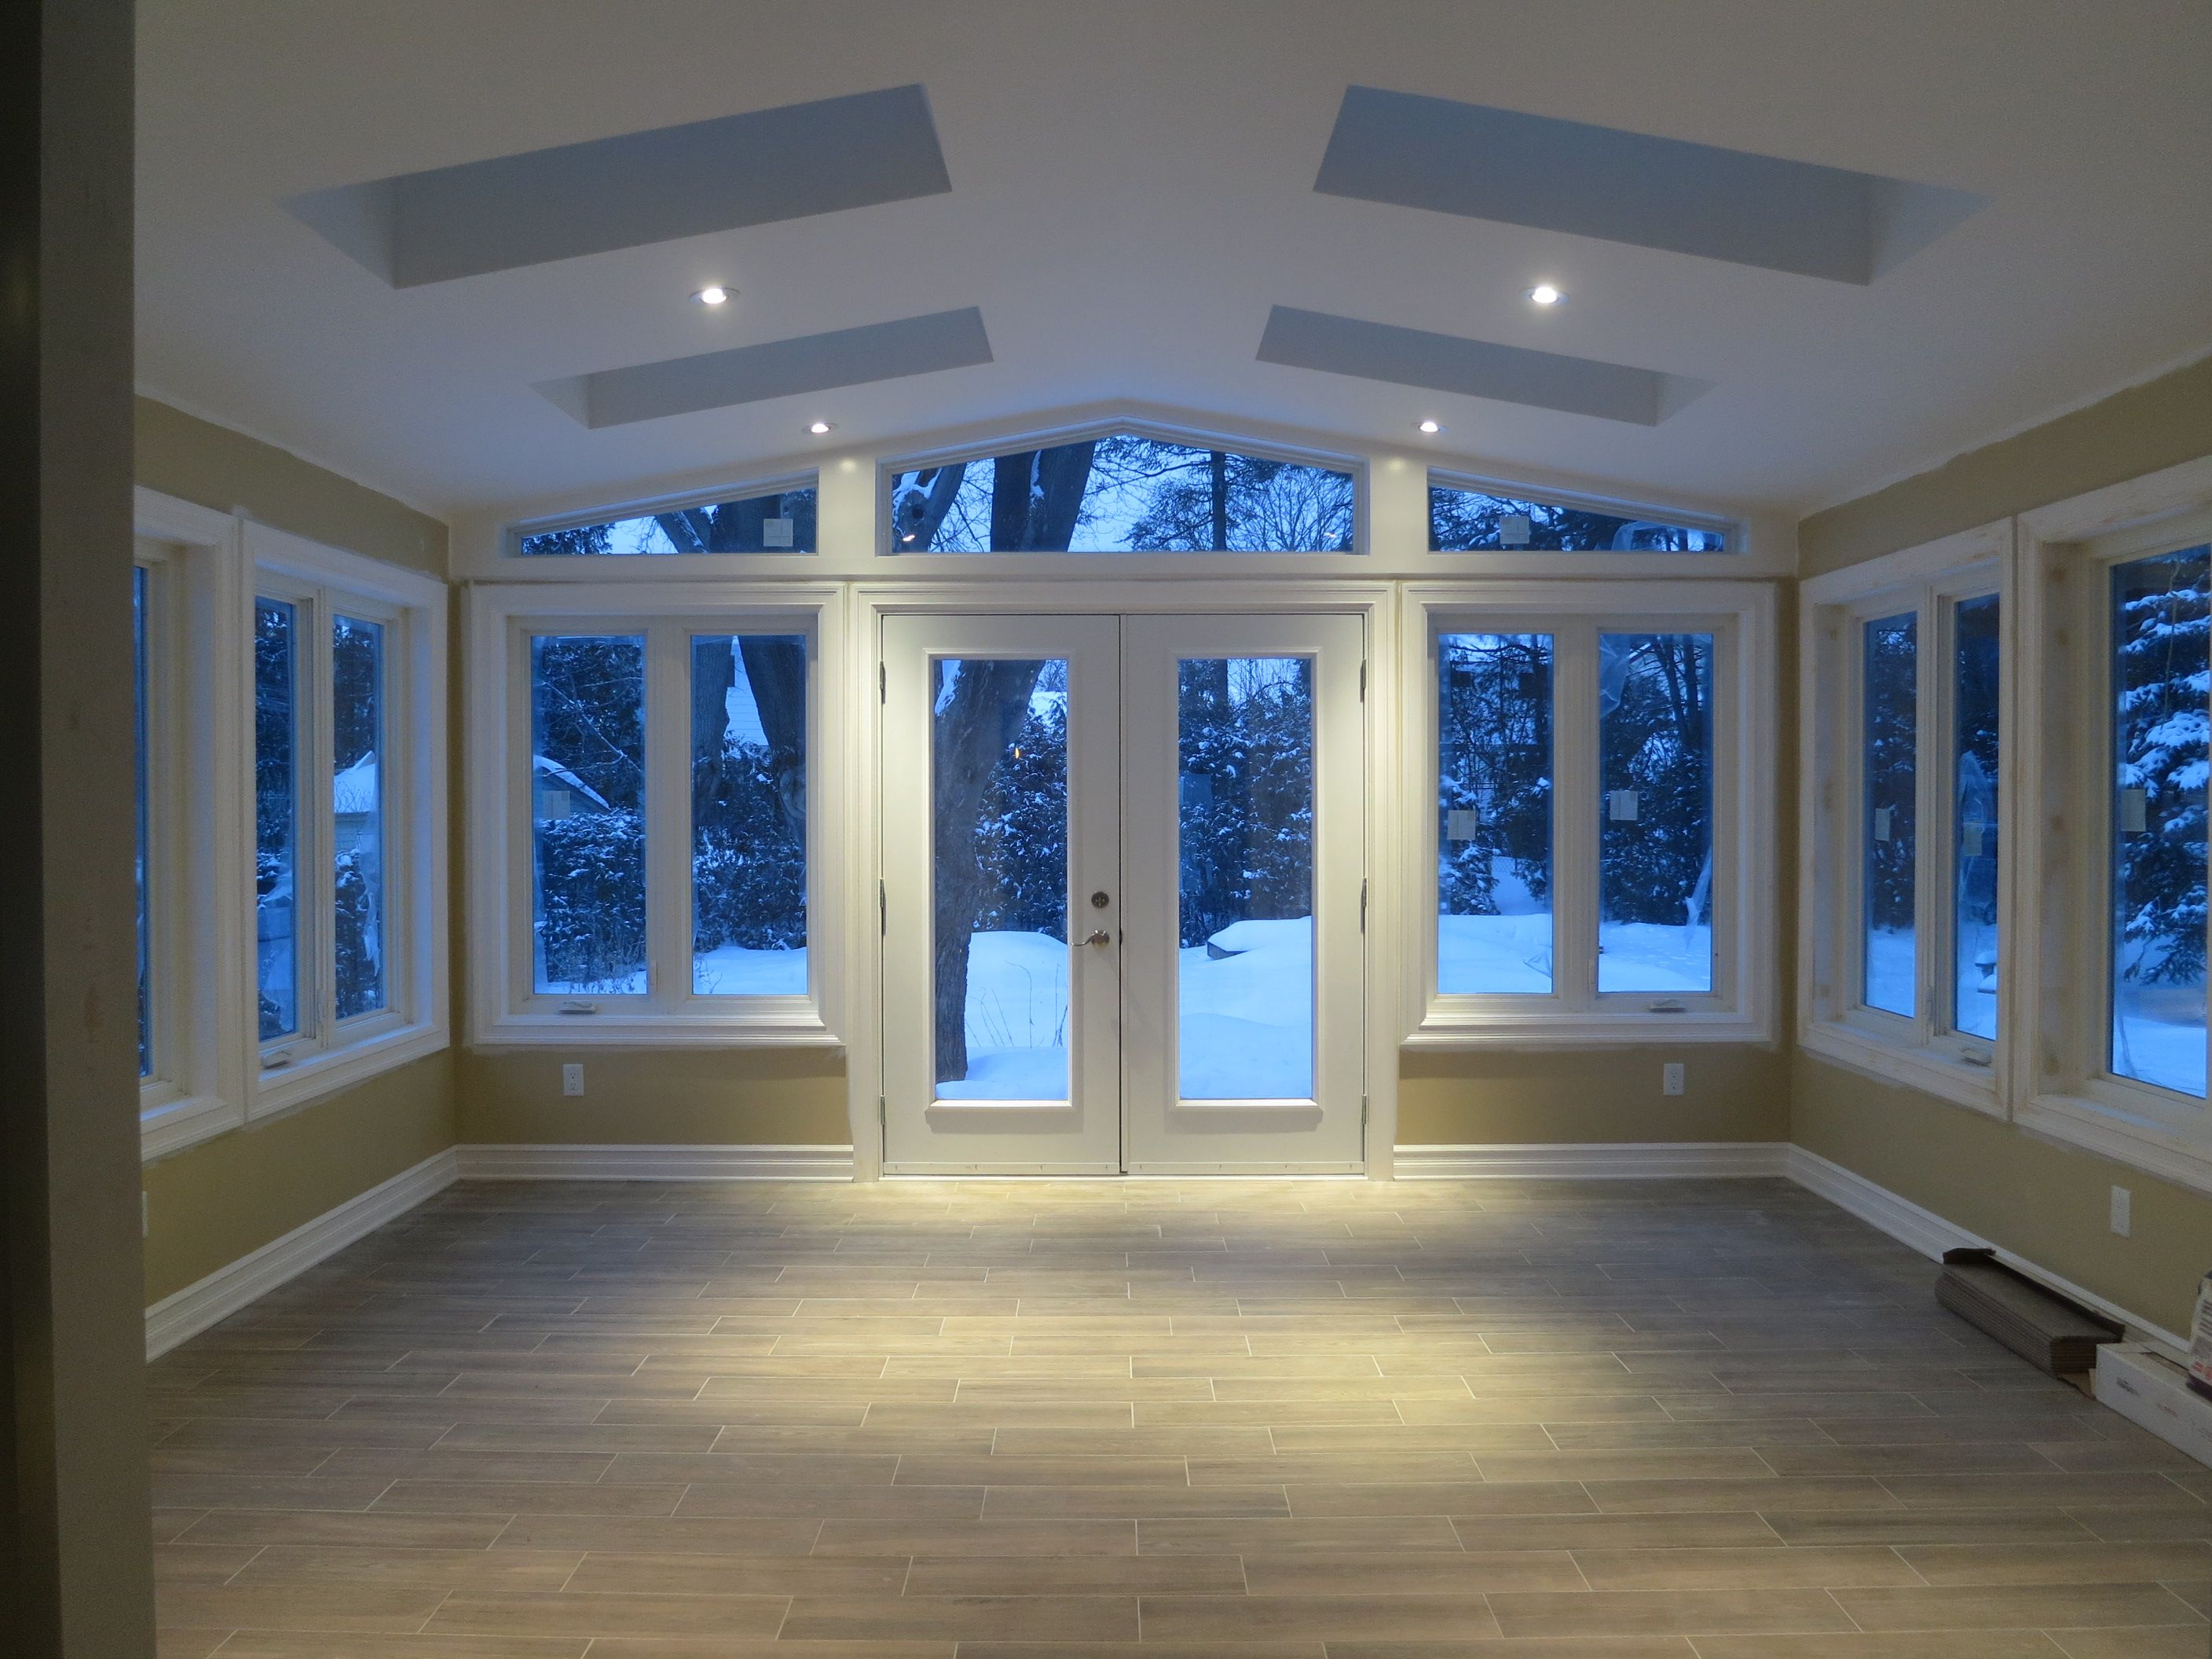 Just a couple more days until completion. The floors are a heated ...